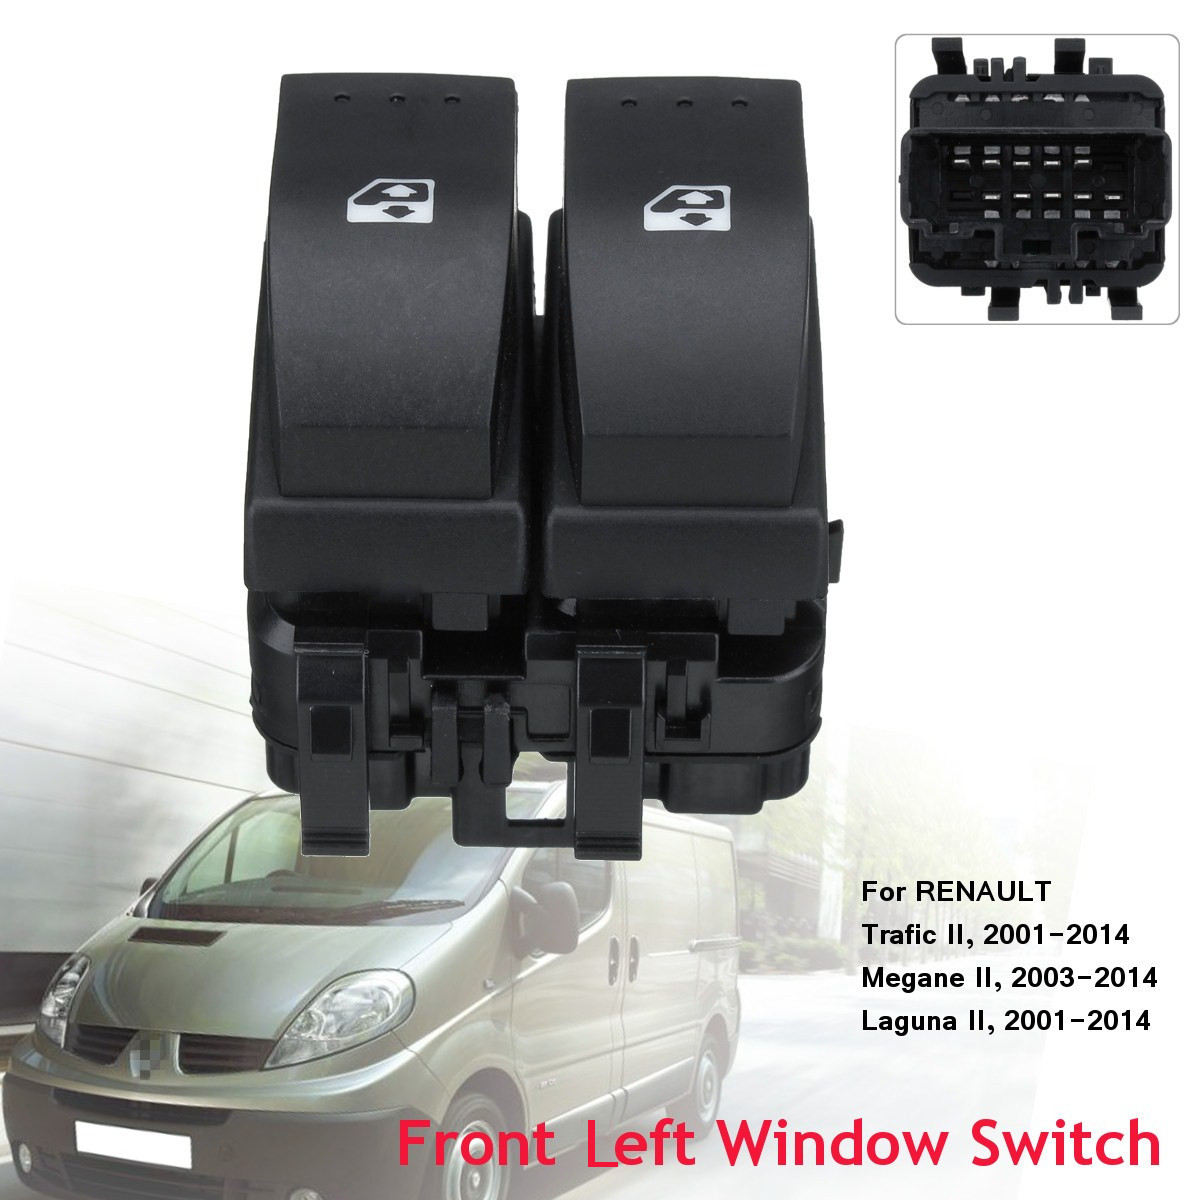 ELECTRIC POWER WINDOW CONTROL SWITCH bouton avant double pour Renault Espace 02